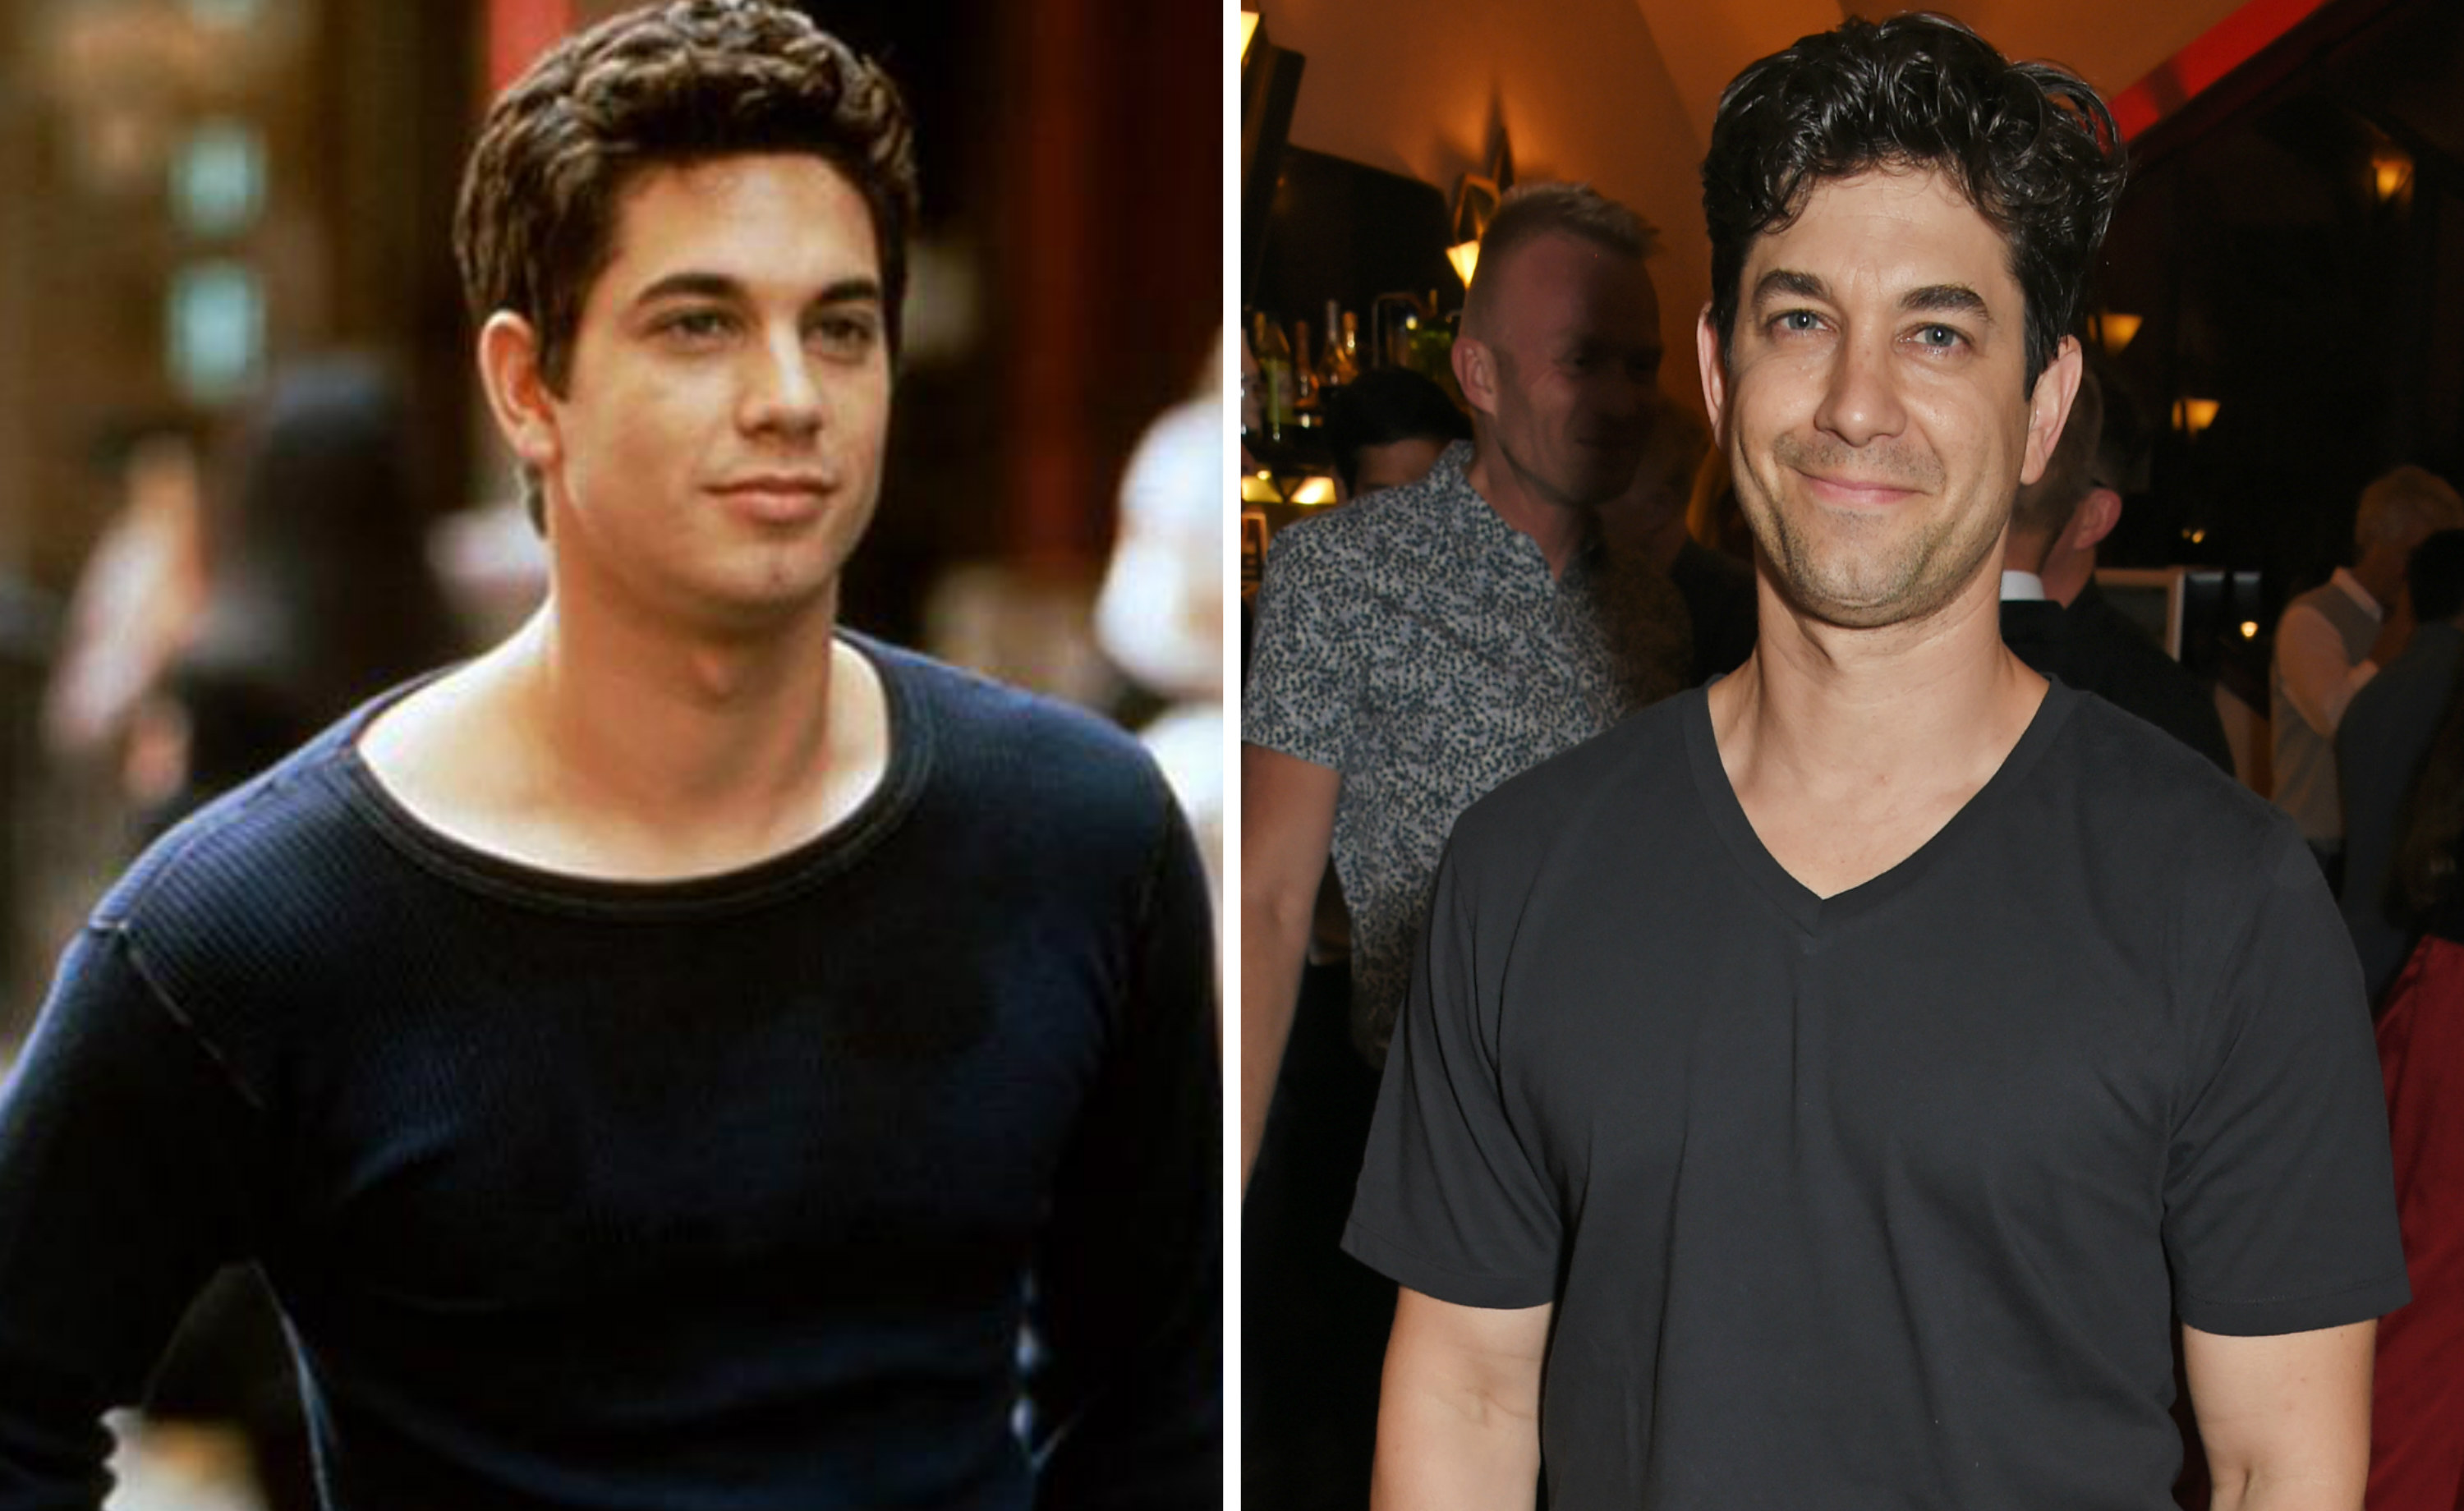 A Star Of The West End Stage Adam Garcia Hot Footed From Saturday Night Fever To Coyote Ugly As Violets Love Interest Kevin